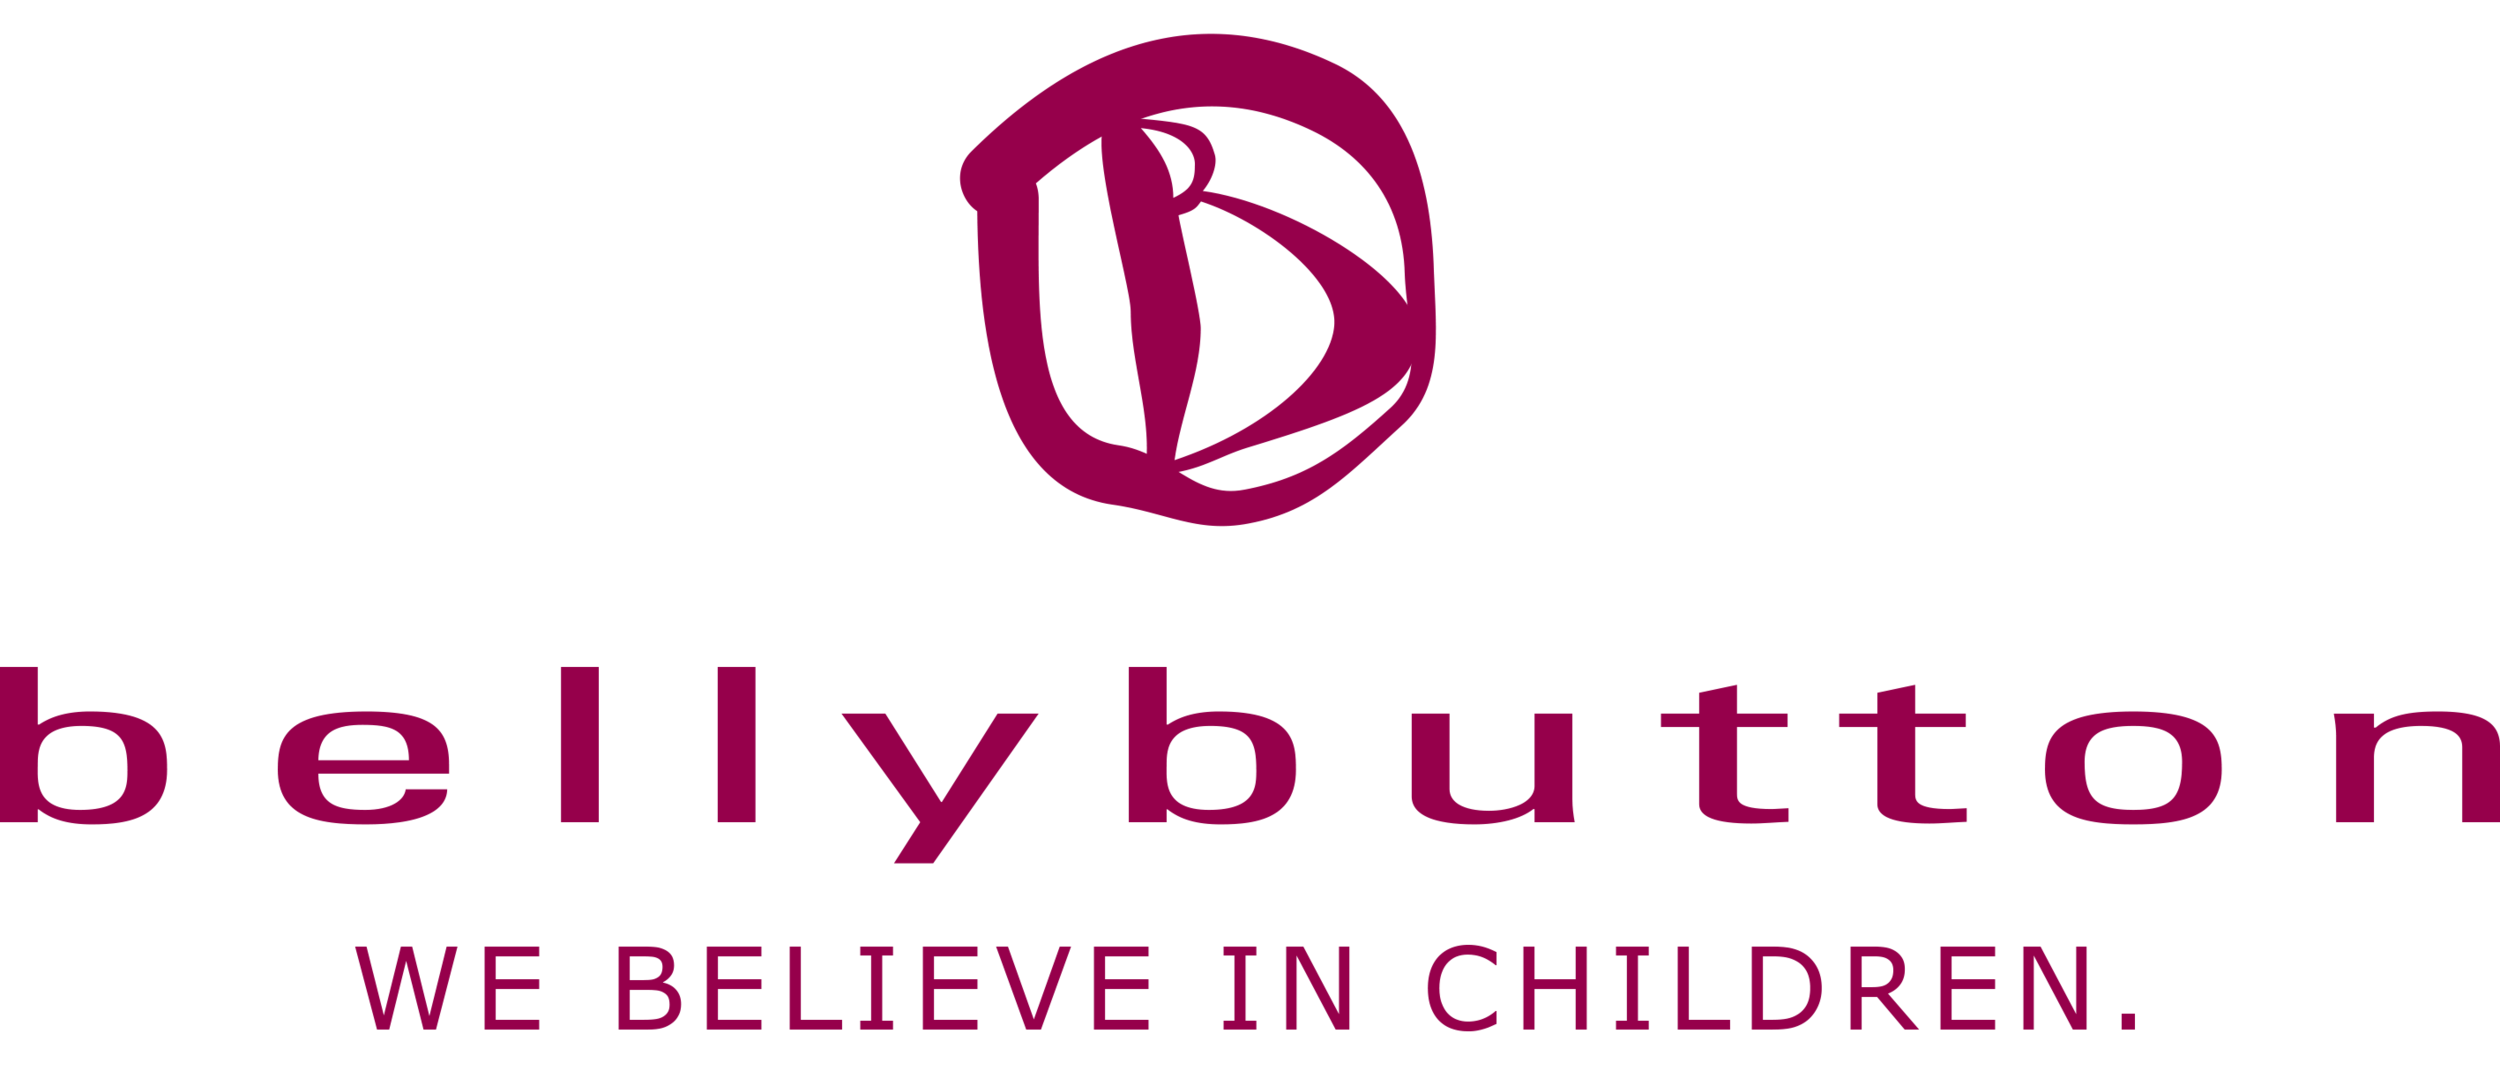 bellybutton_webelieveinchildren